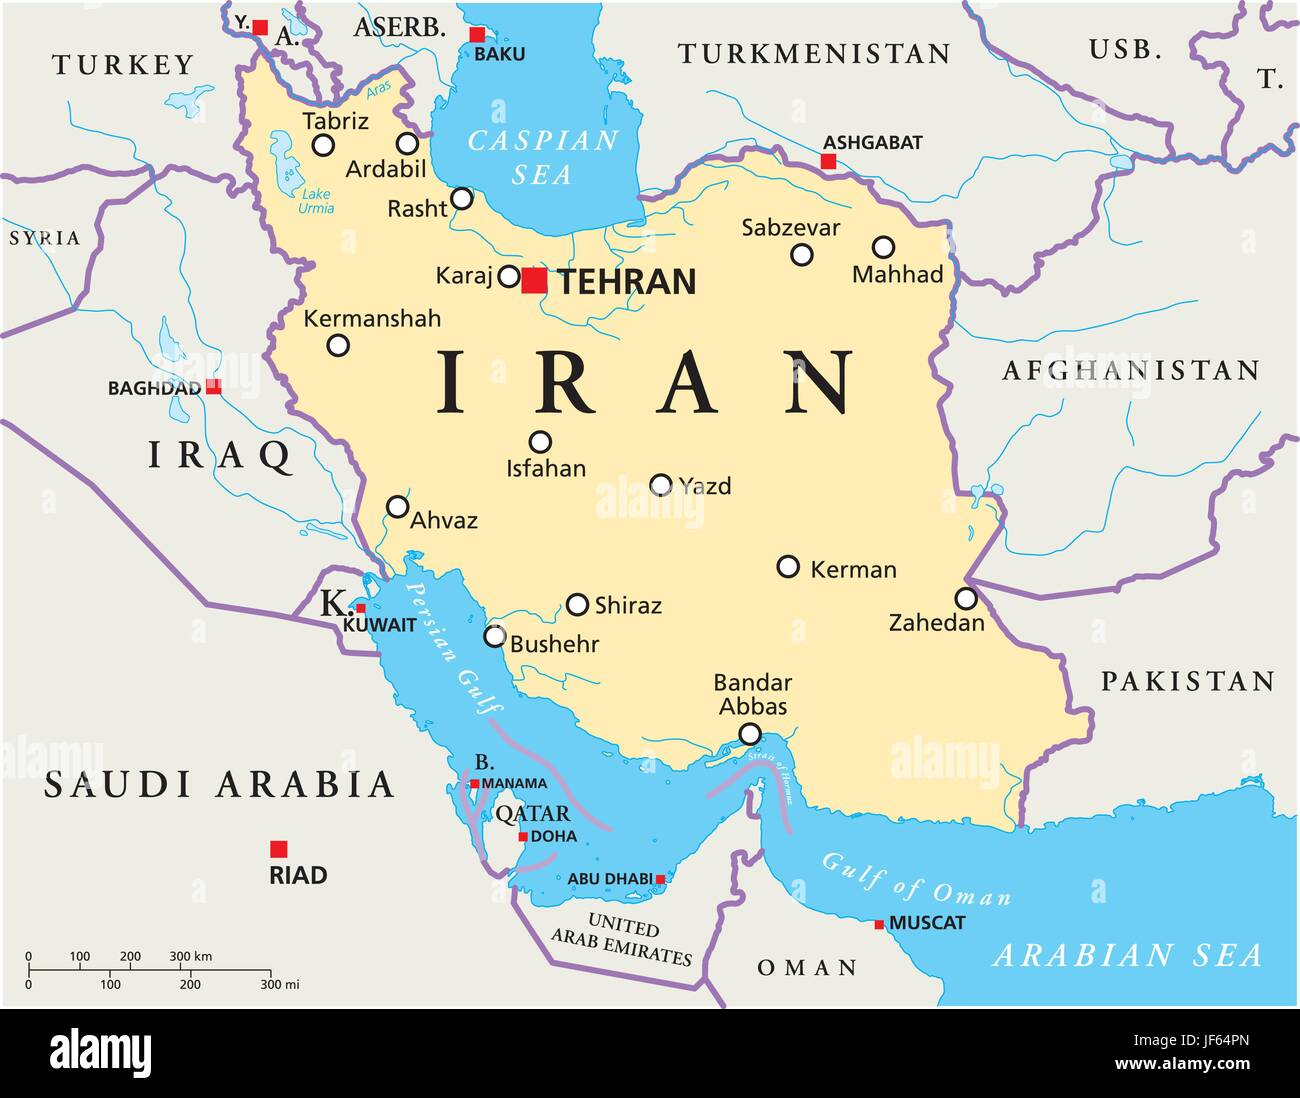 Iran persia map atlas map of the world political arab iran iran persia map atlas map of the world political arab iran persia gumiabroncs Image collections